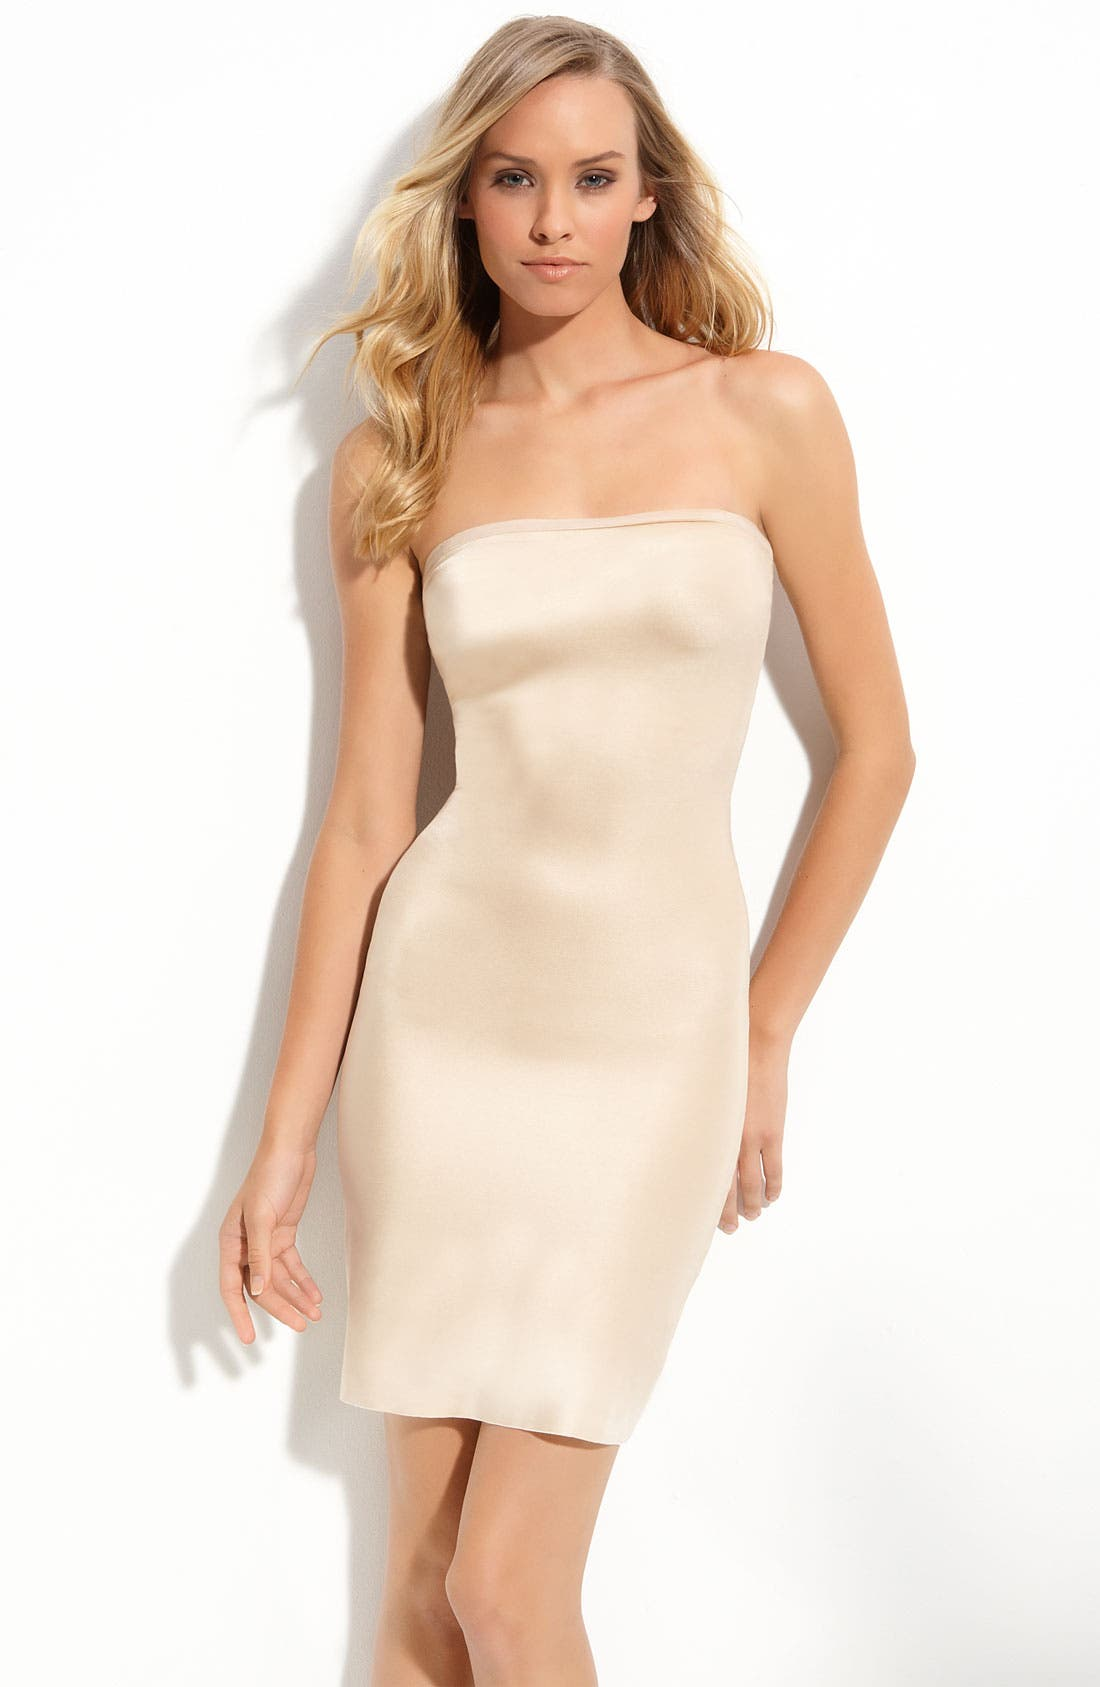 Alternate Image 1 Selected - SPANX® Convertible Strapless Slip Shaper